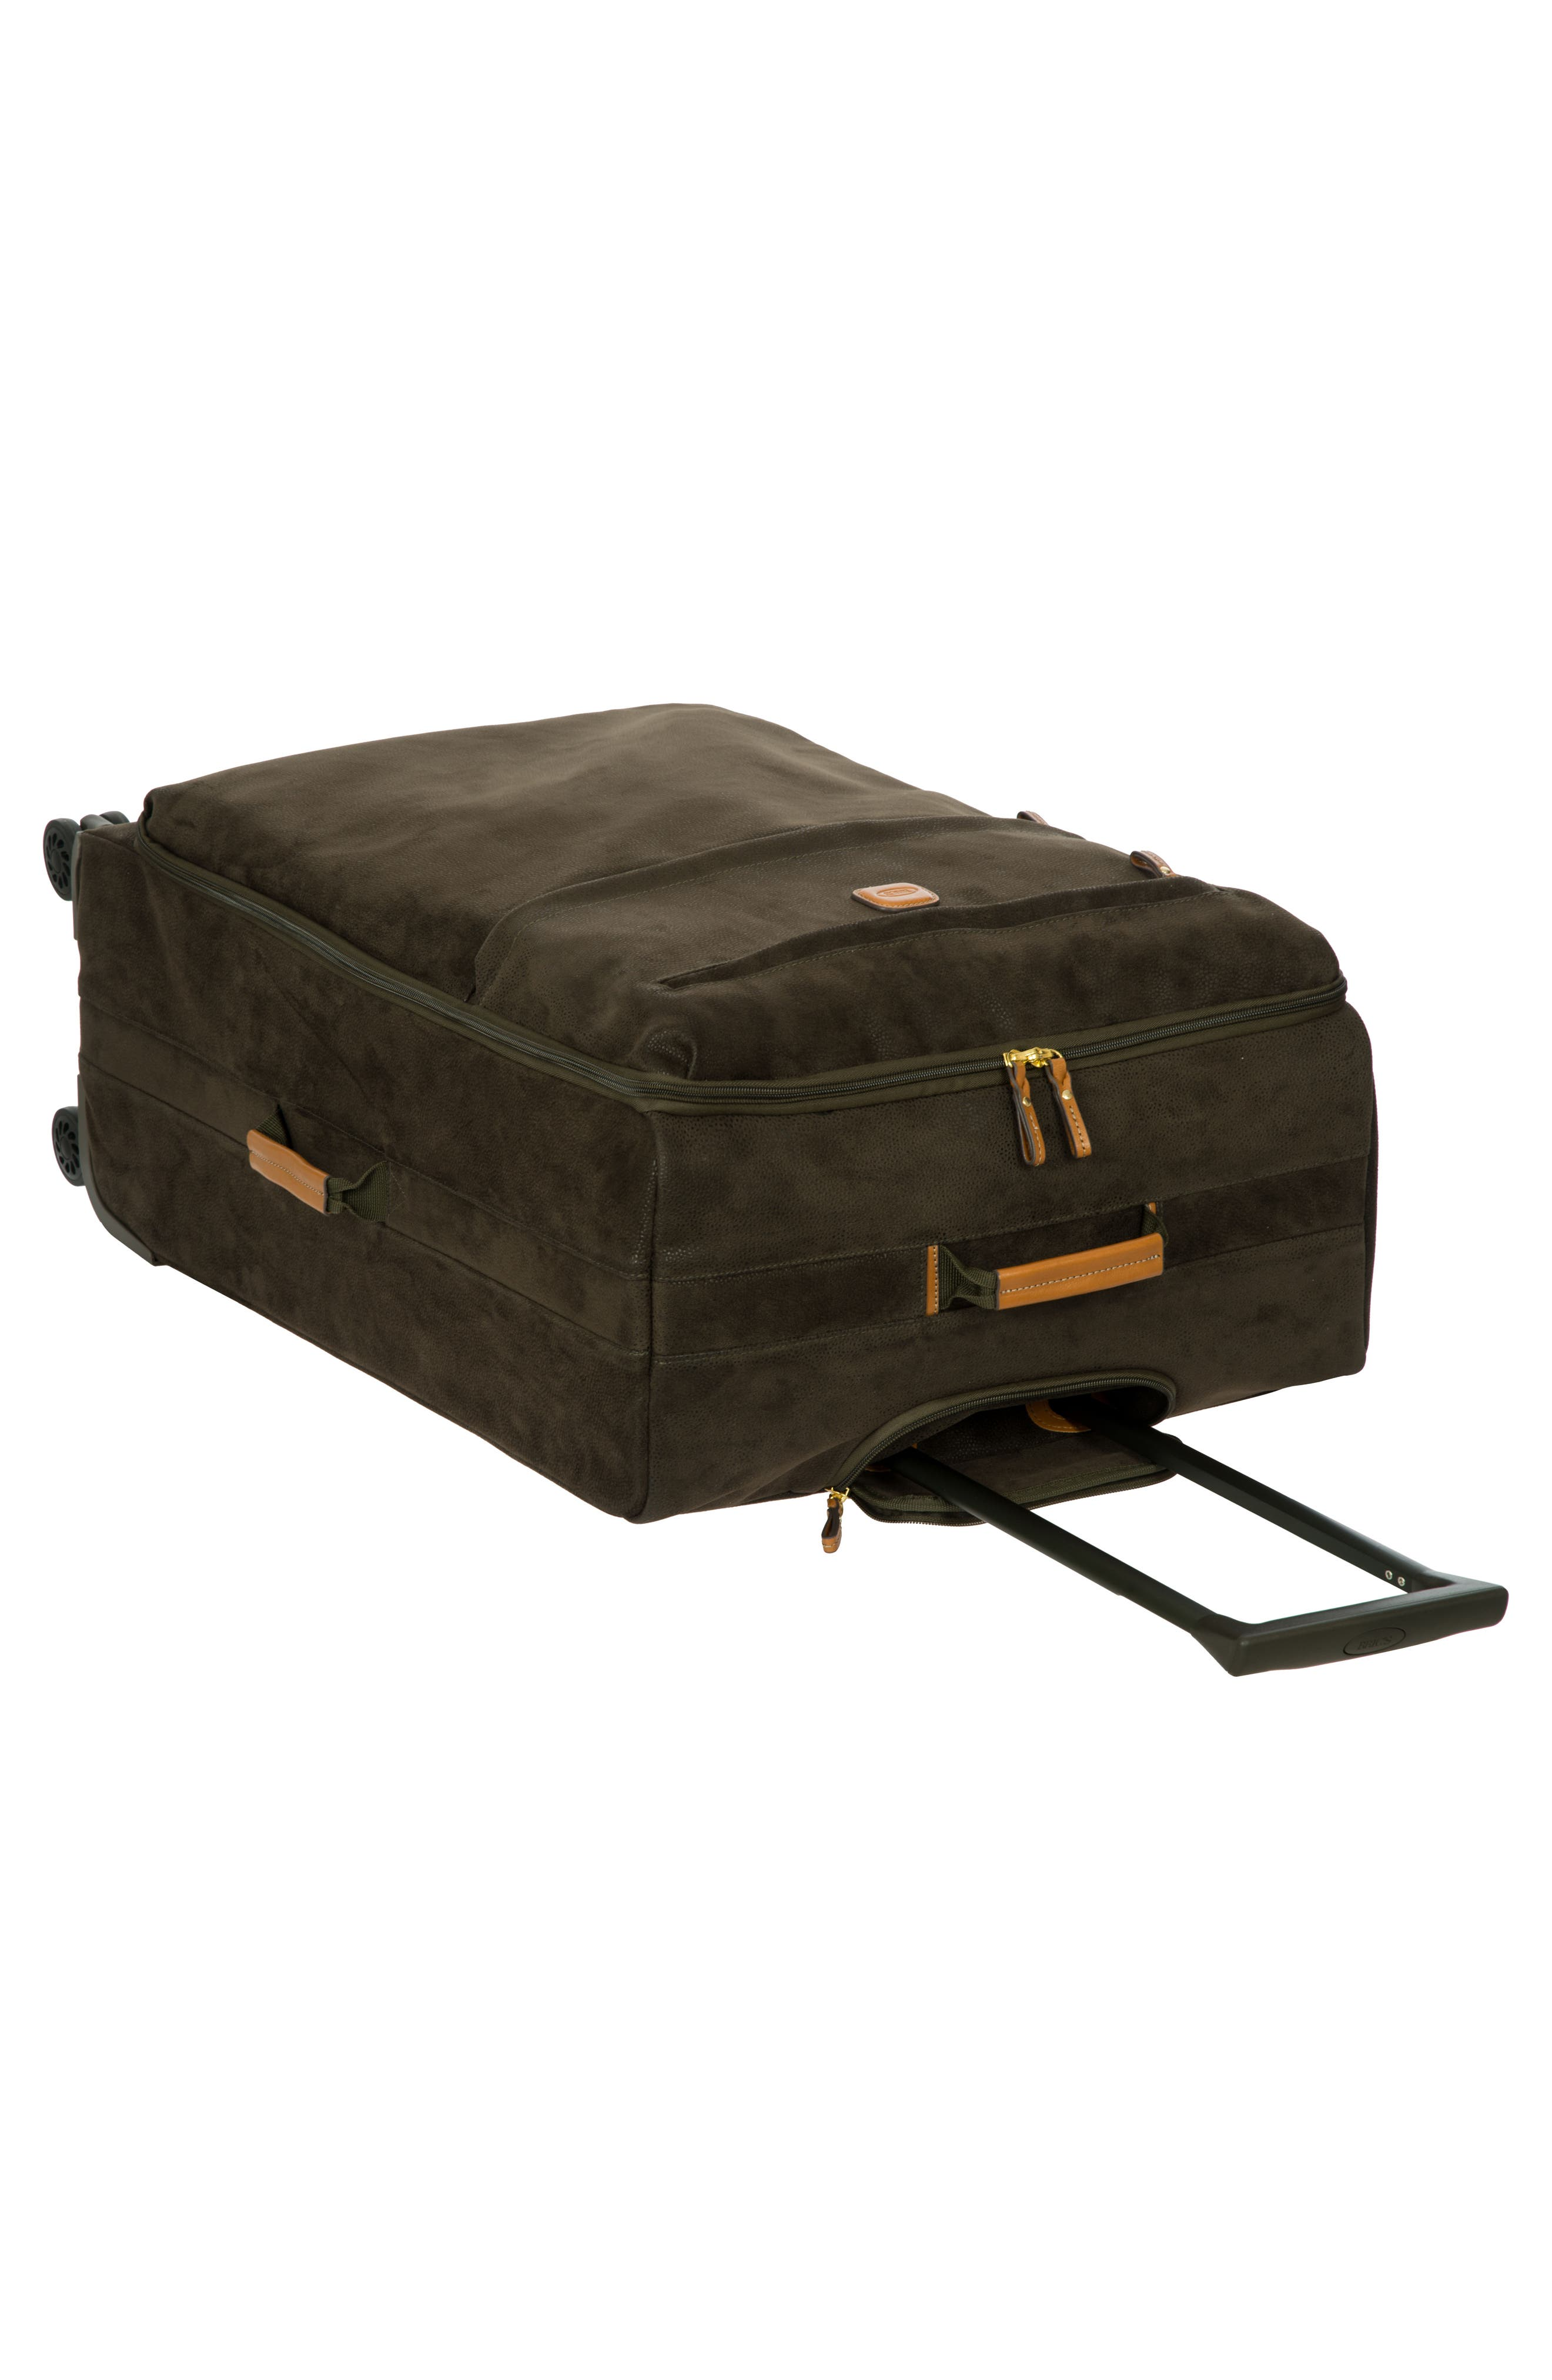 LIFE Collection 30-Inch Wheeled Suitcase,                             Alternate thumbnail 5, color,                             Olive